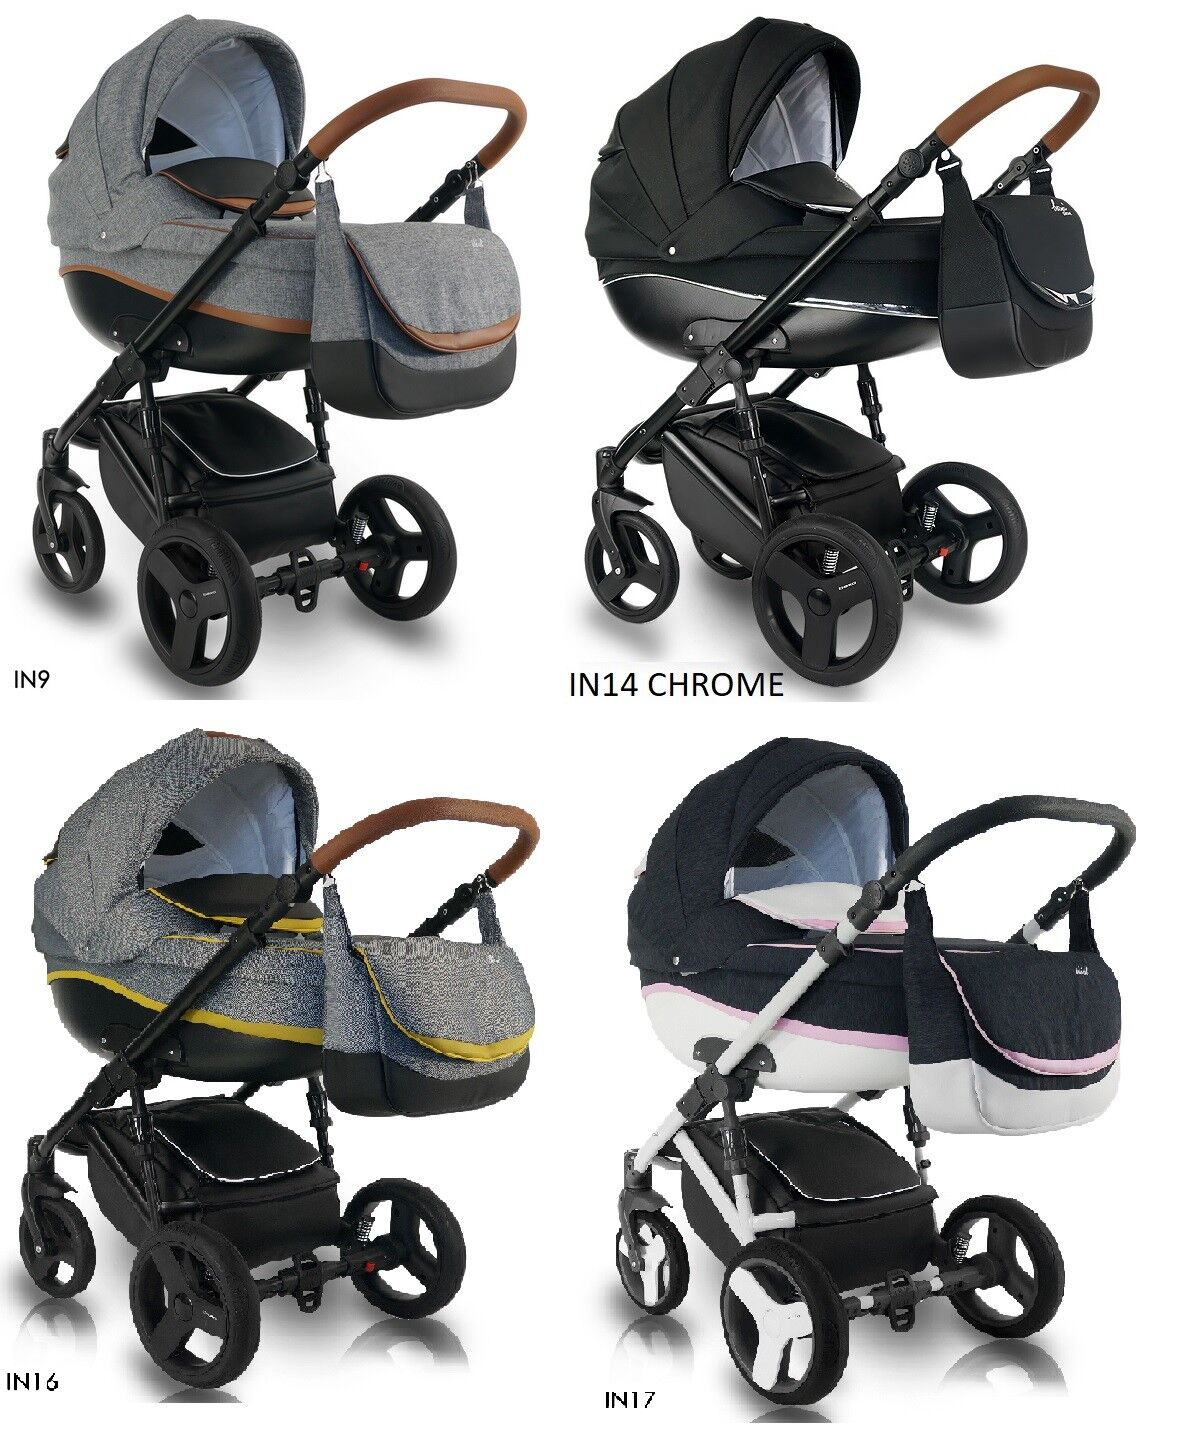 Toy Buggy With Car Seat Baby Pram Ideal New Bexa Pushchair Buggy Stroller Car Seat 4in1 Travel System